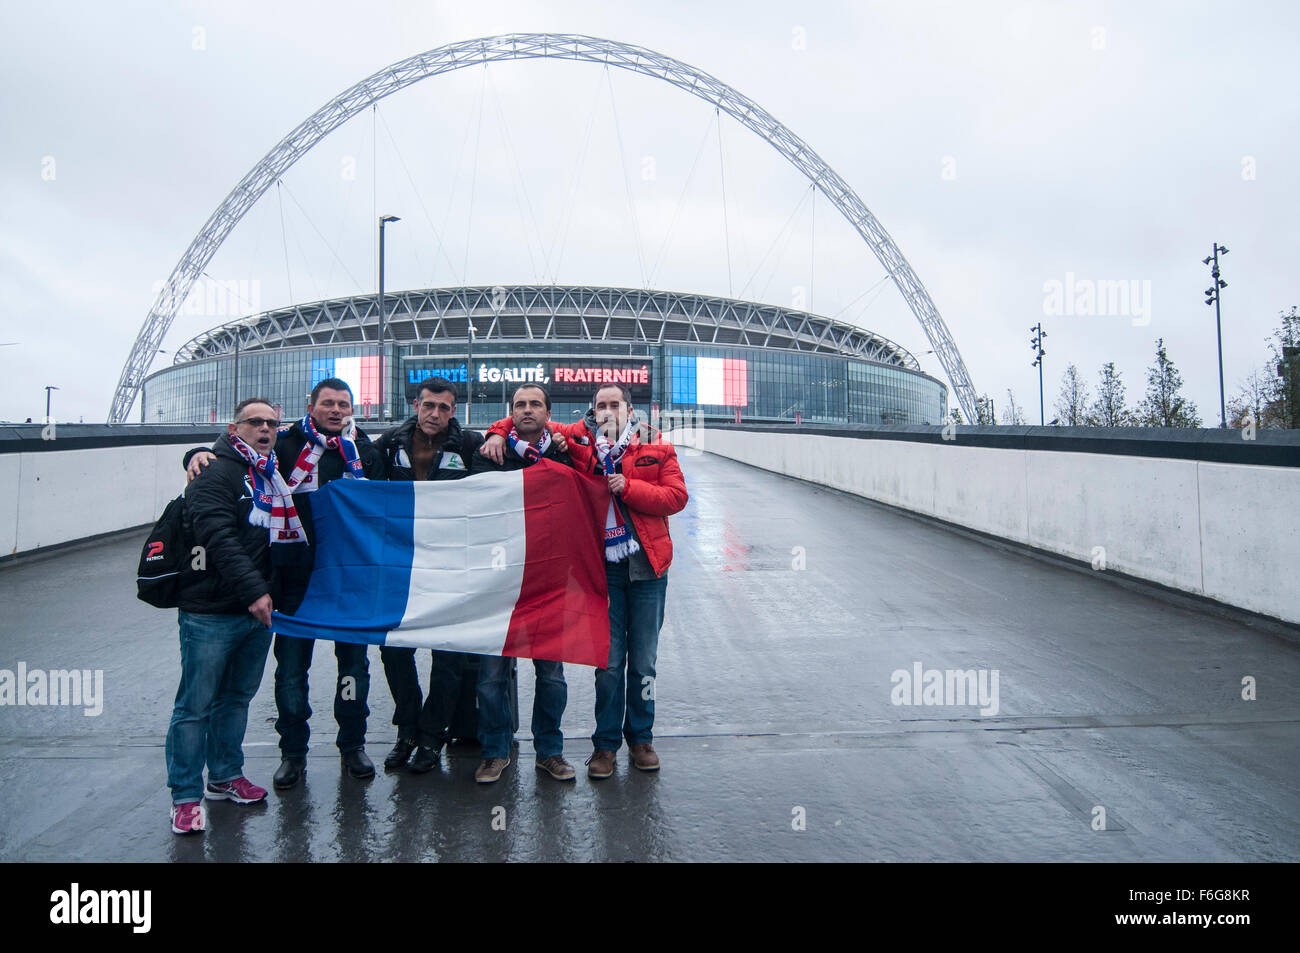 London, UK.  17 November 2015.  French supporters start arriving at Wembley Stadium ahead of the football friendly - Stock Image